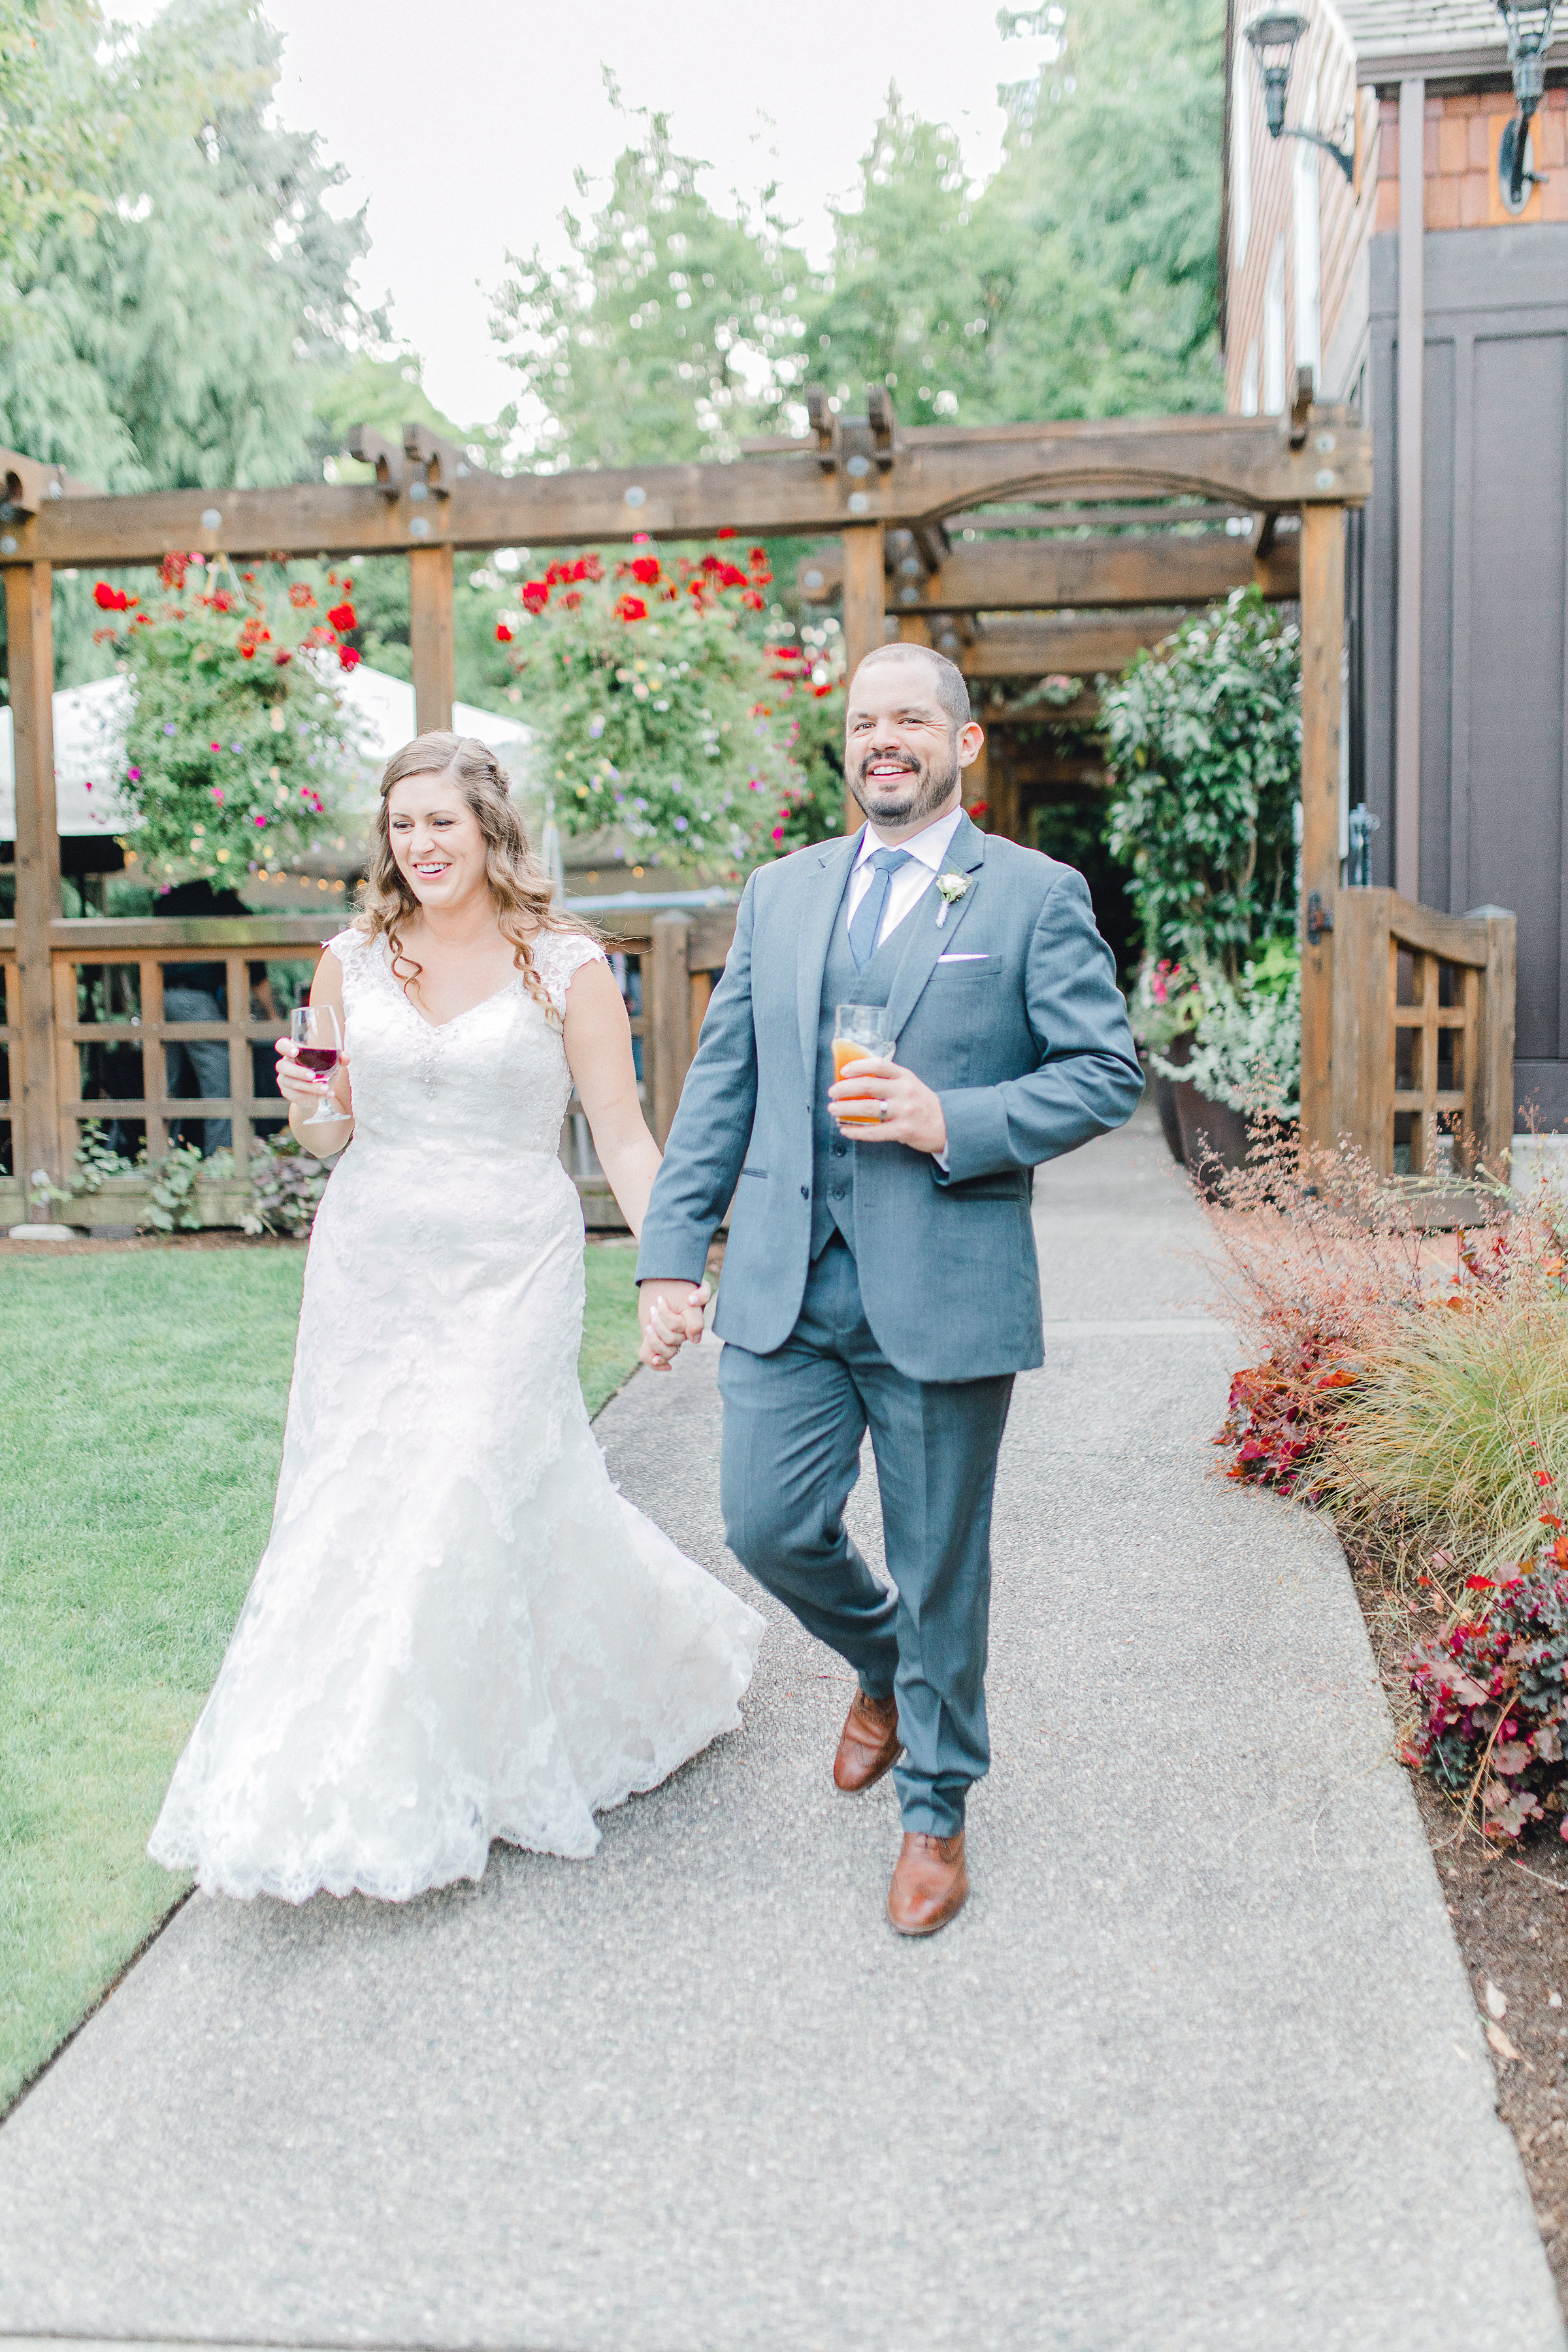 Seattle wedding, Washington wedding, bride and groom, PNW wedding, wedding inspiration, wedding flowers, Seattle bride, outdoor wedding, garden wedding, wedding wine, bride and groom wine